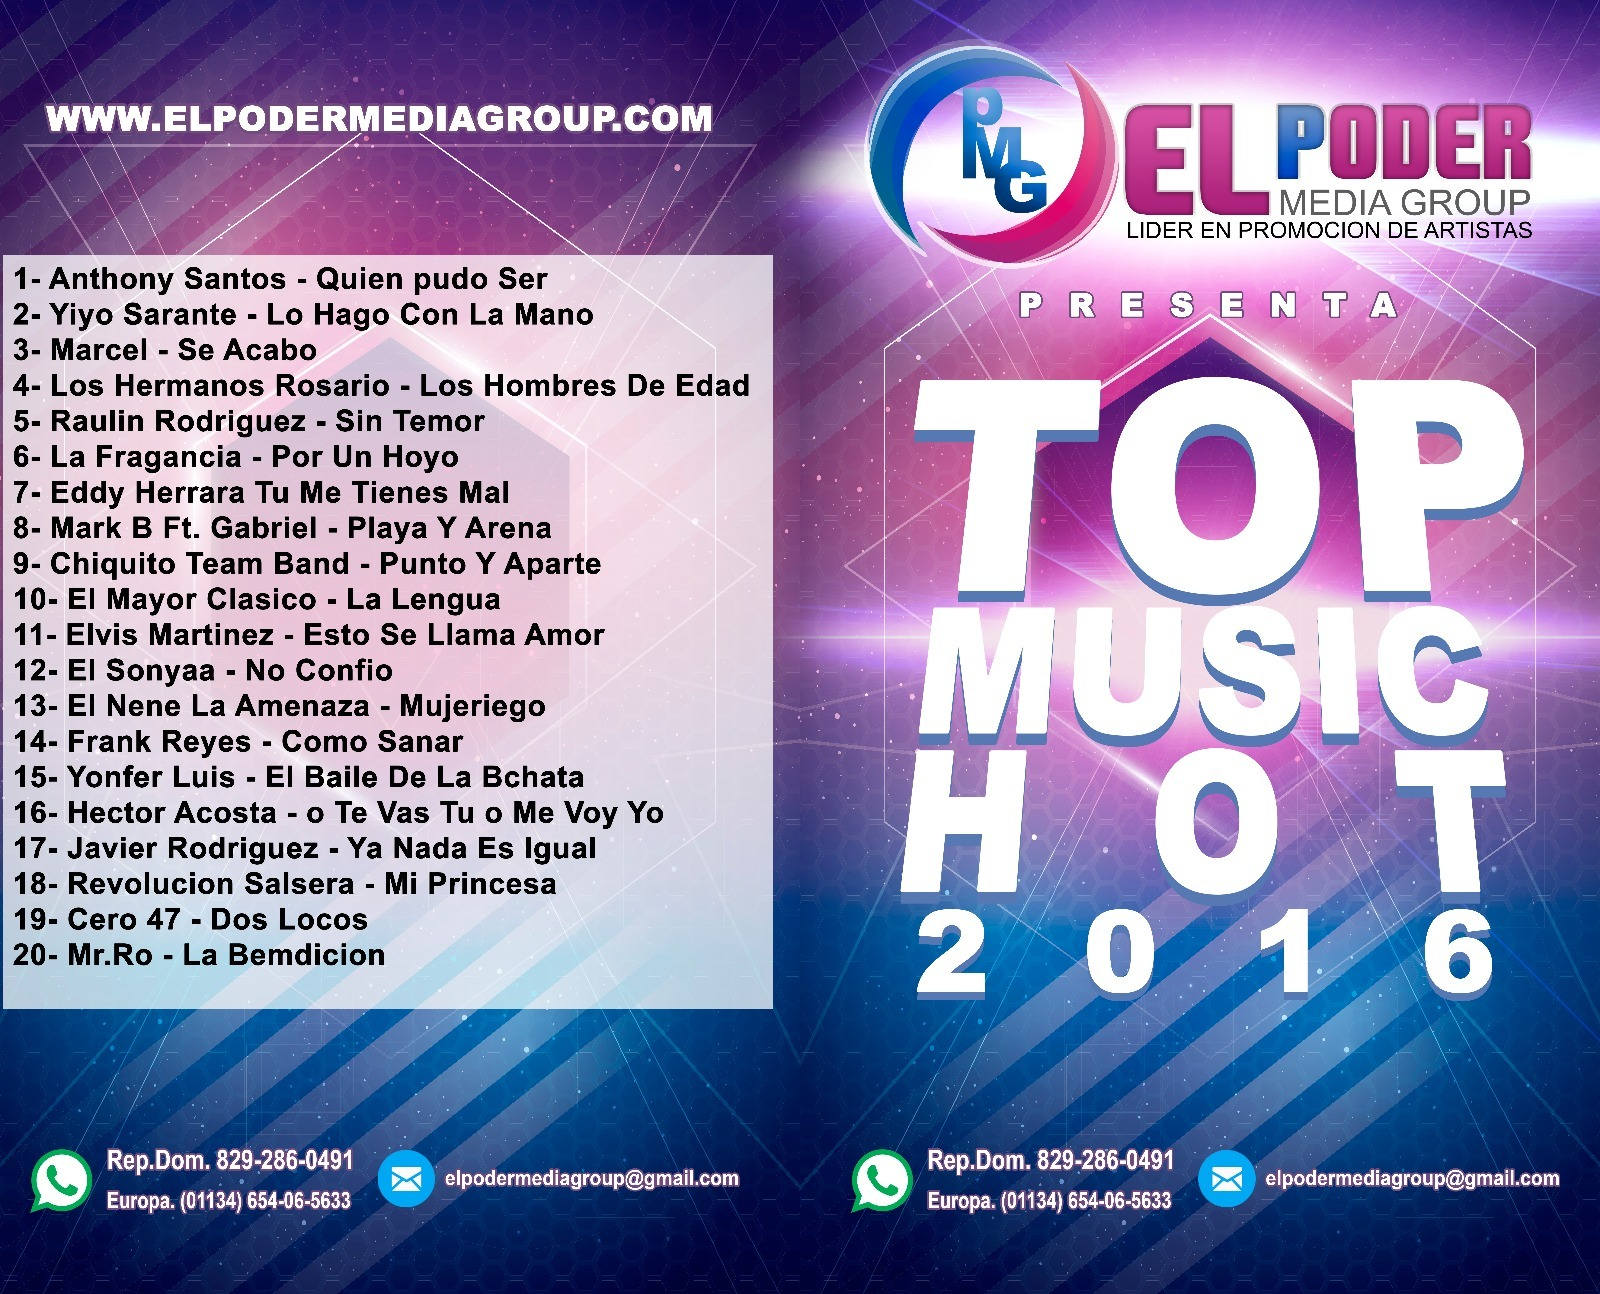 EL PODER MEDIA GROUP PRESENTA: TOP MUSIC HOT 2016 (CD 2016)